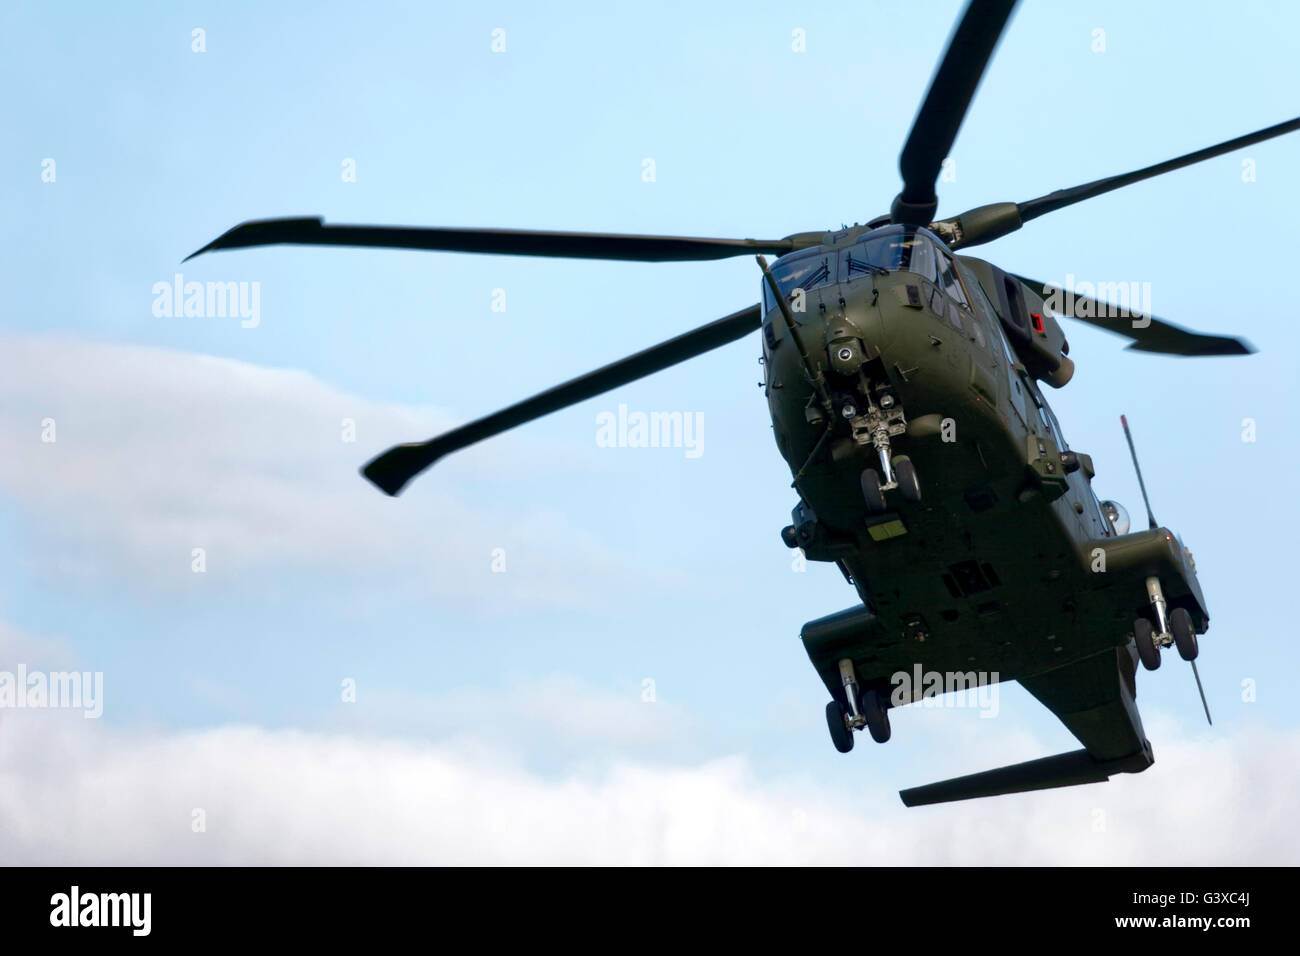 A Royal Air Force Merlin HC.3 Helicopter at the Yeovilton International Air Day 2005. - Stock Image